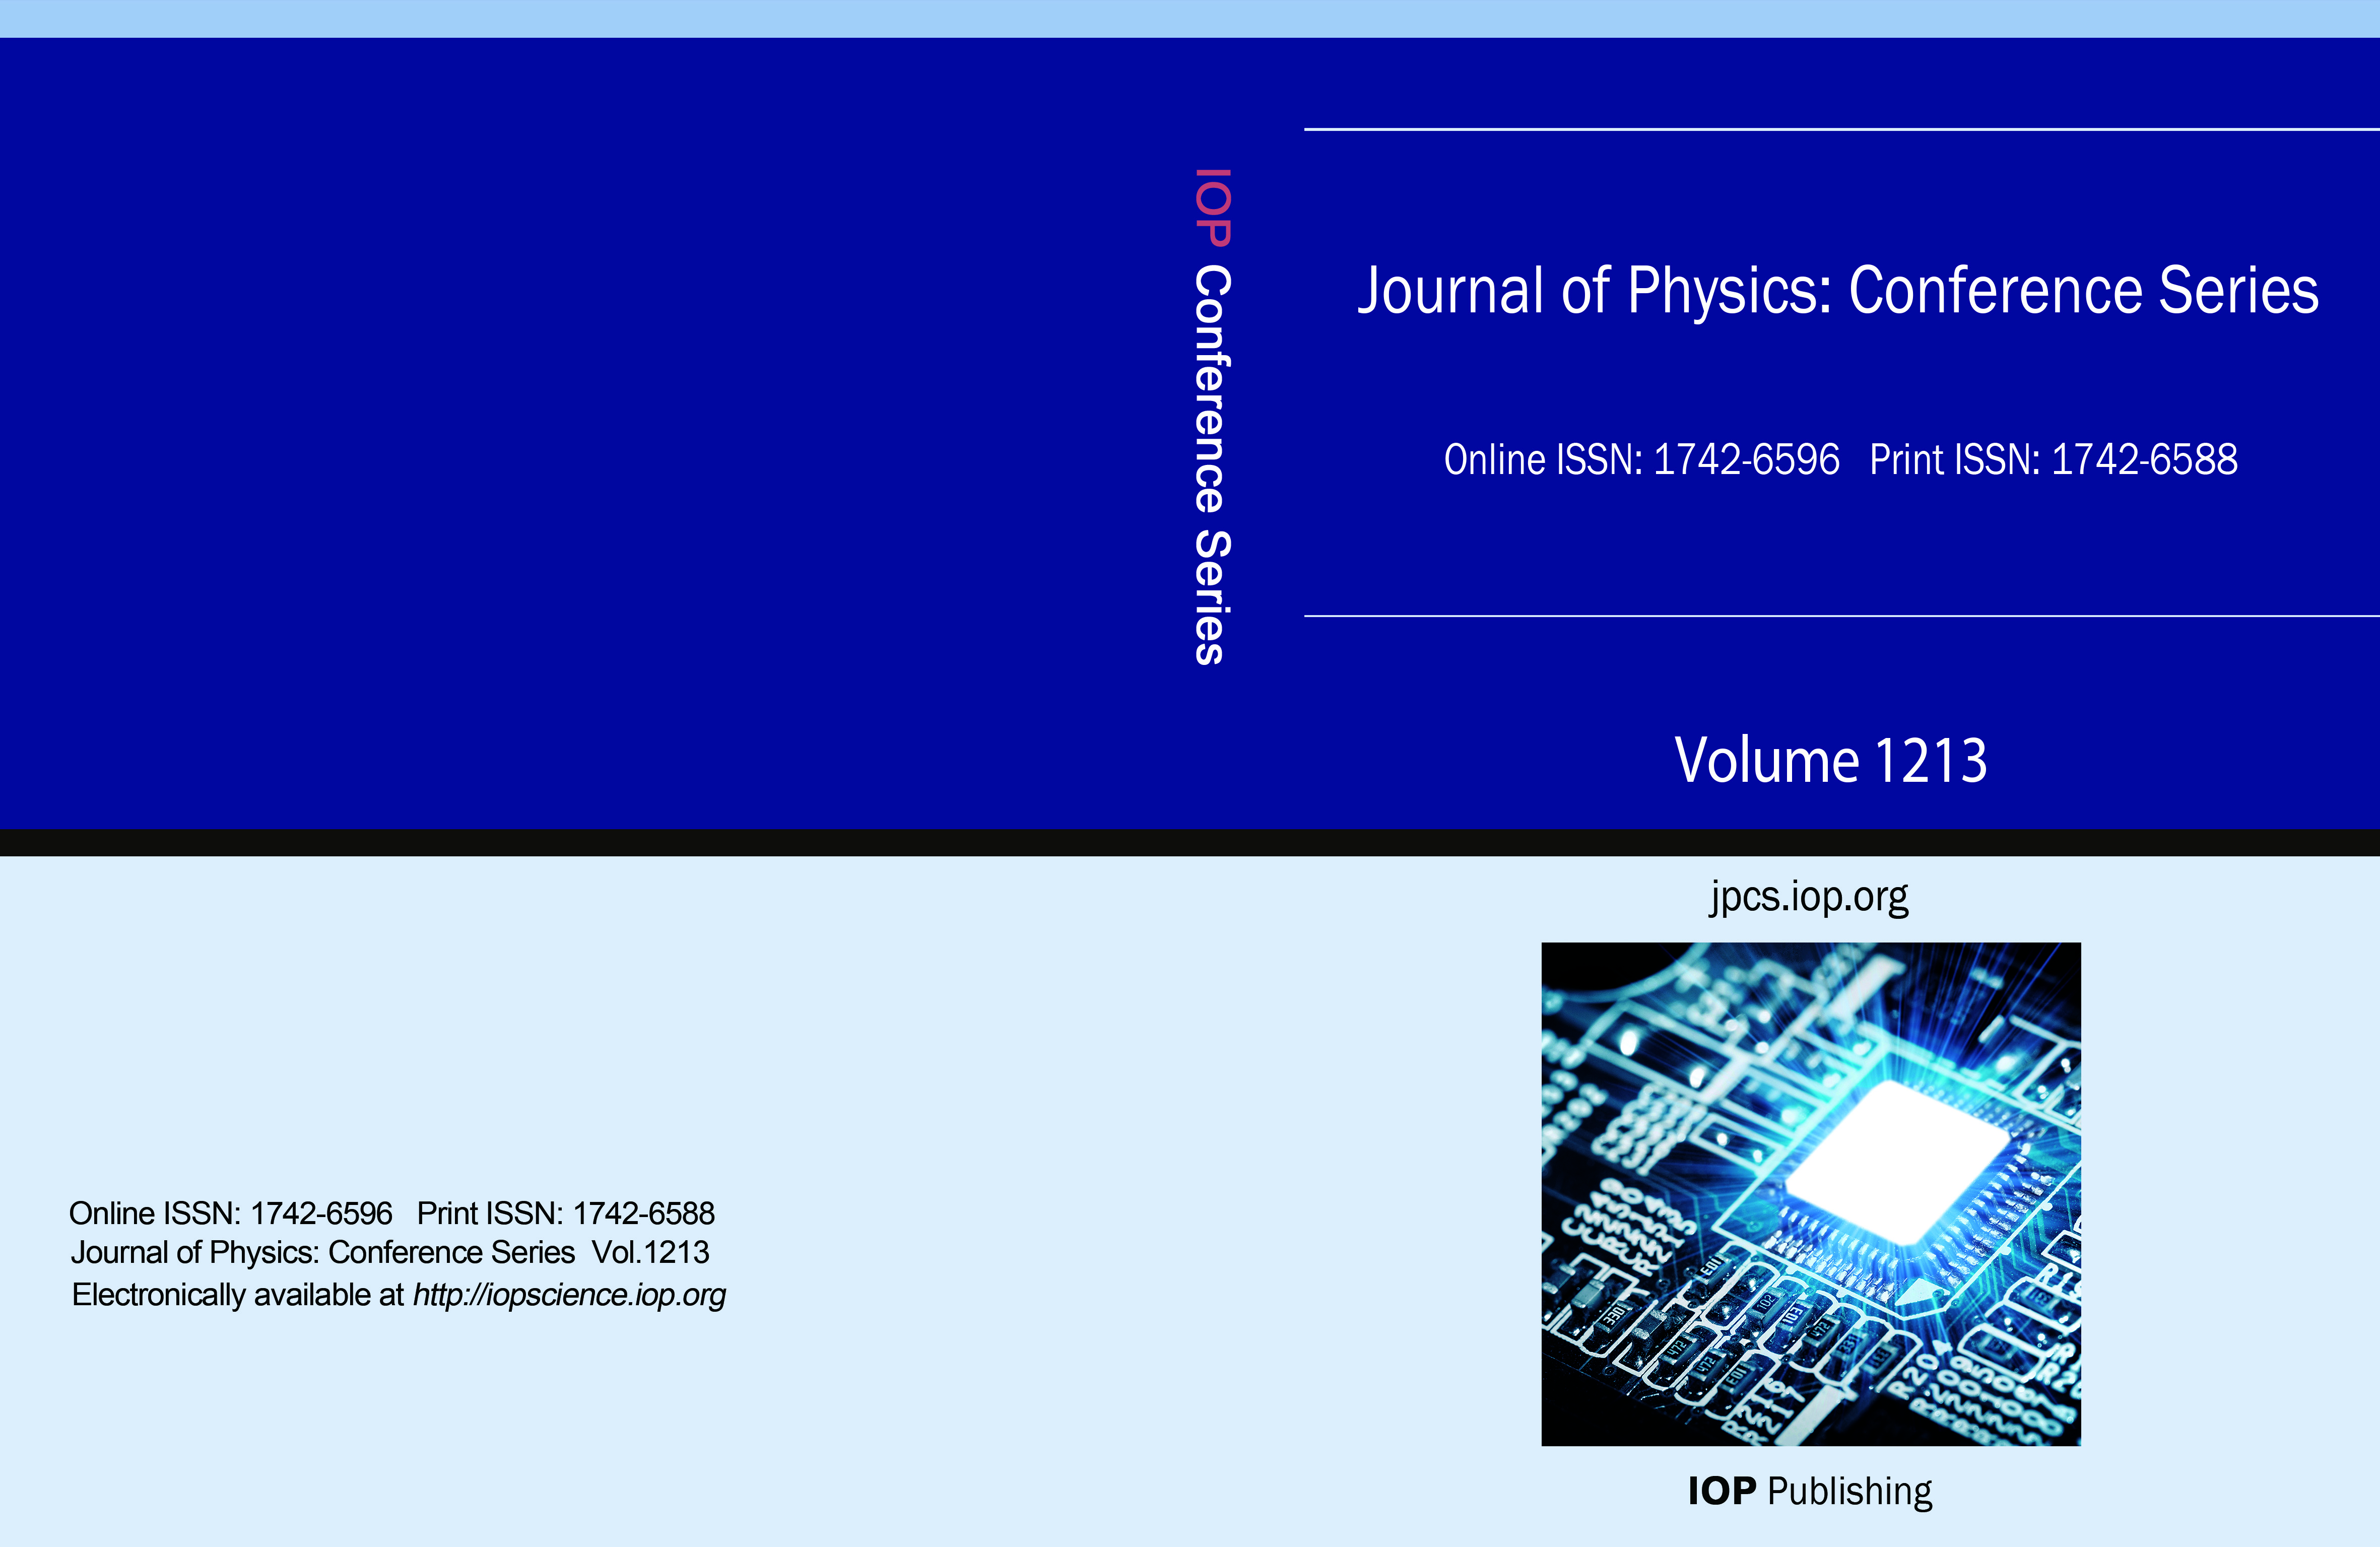 Cover-ICAACE 2019.jpg